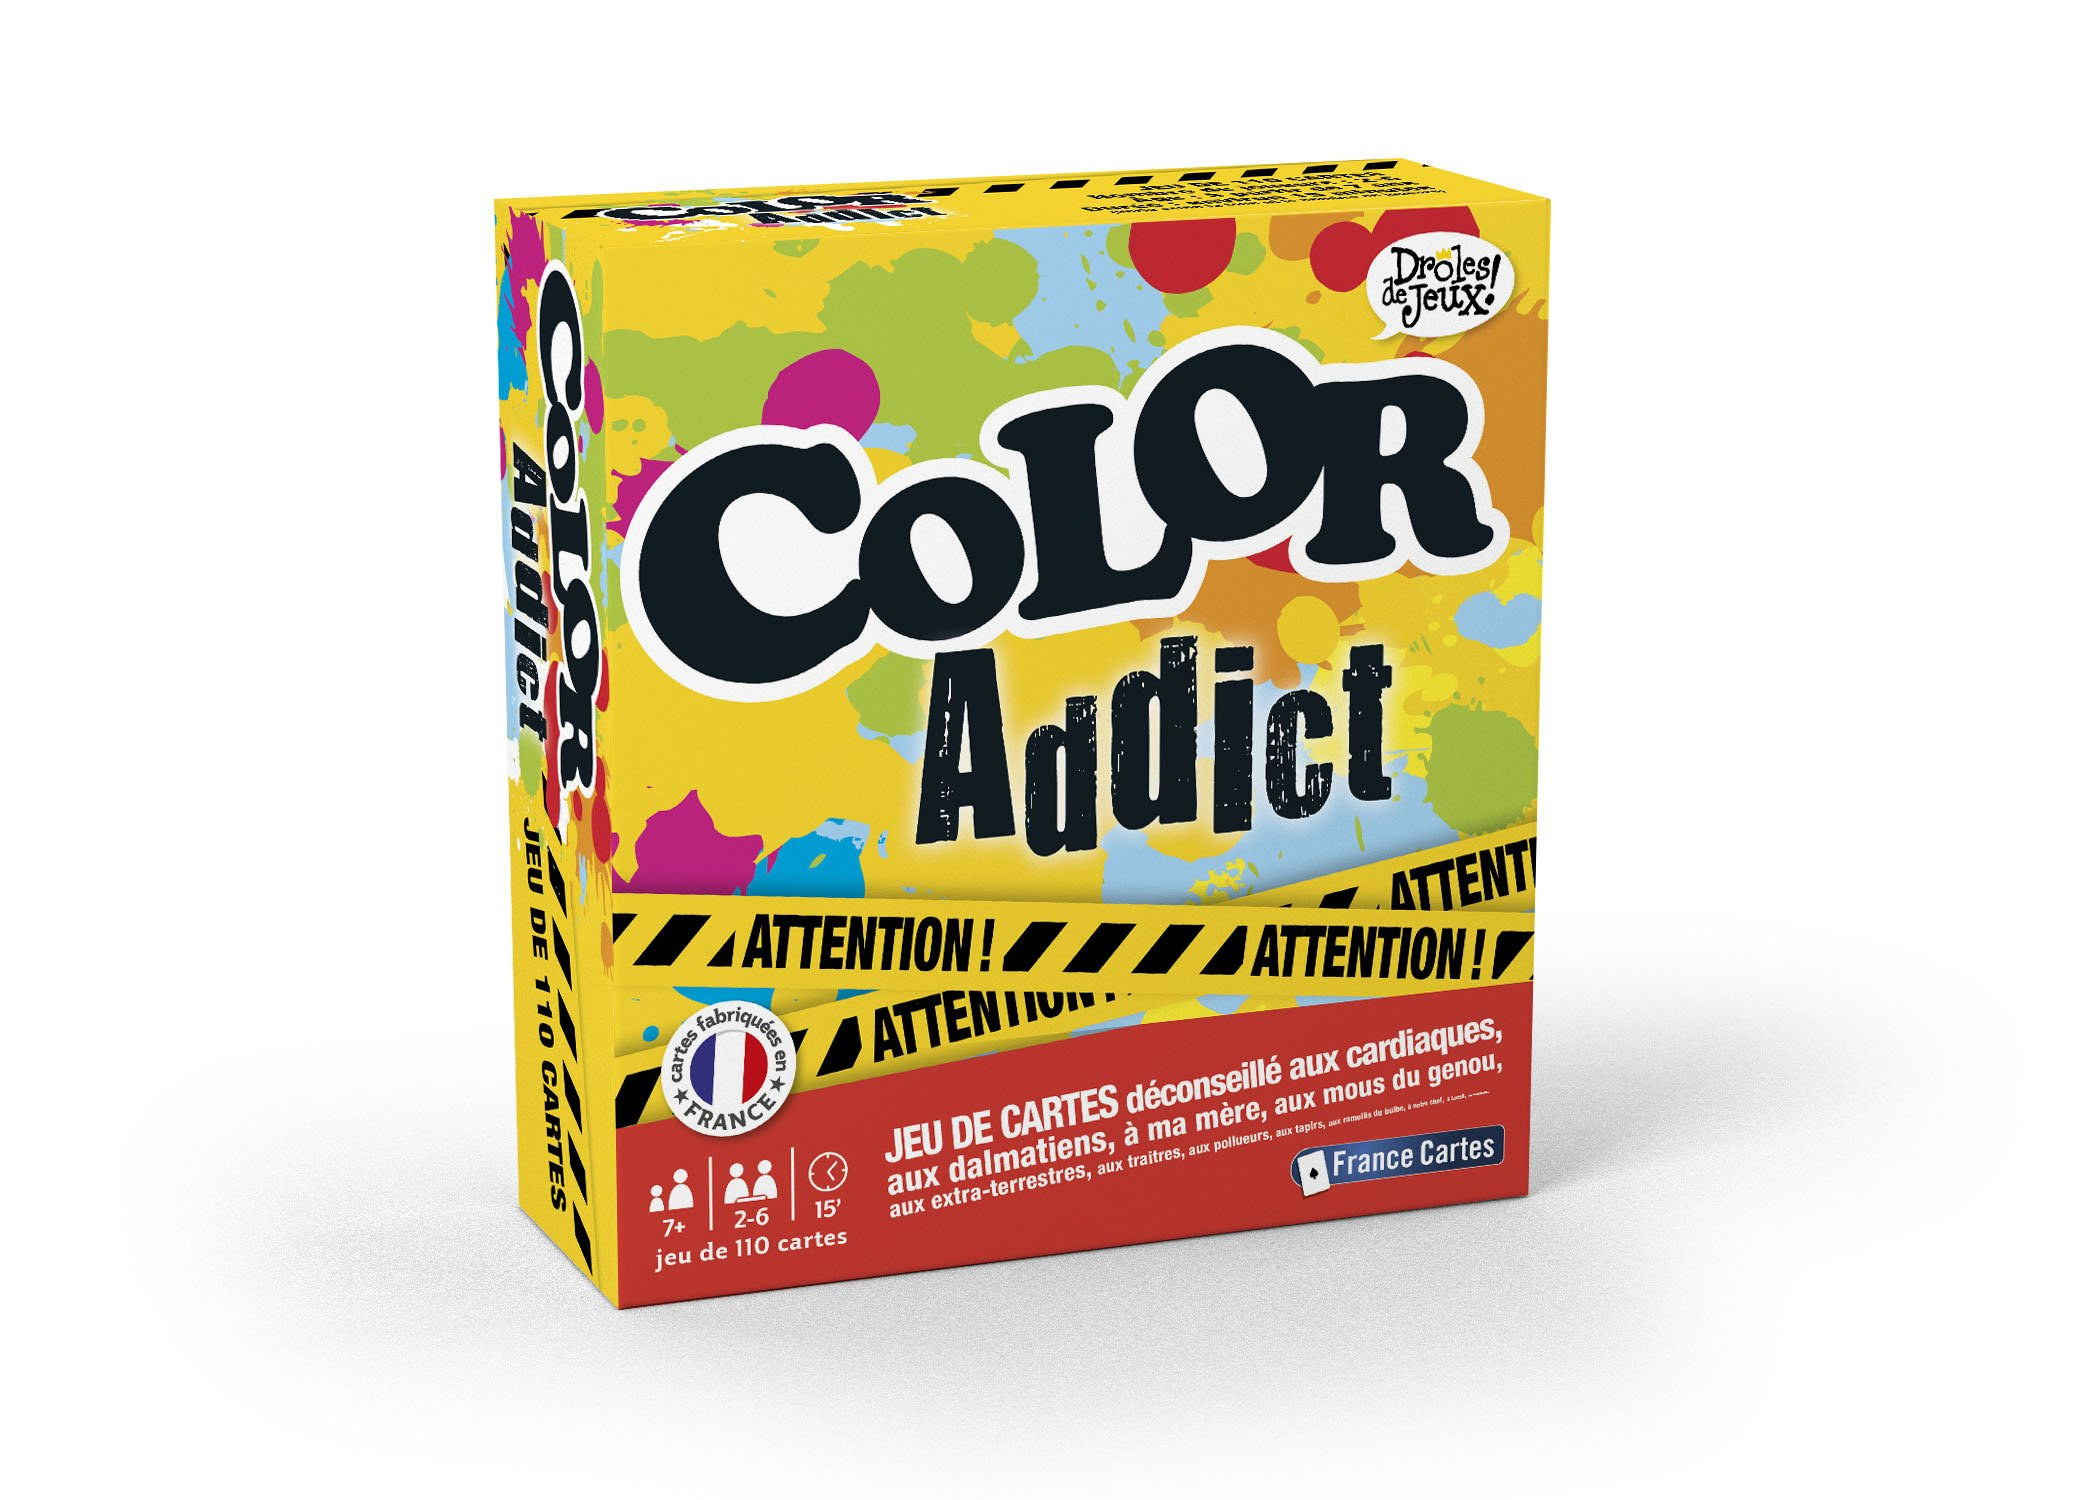 Drôles De Jeux - 410400 - Color Addict product image